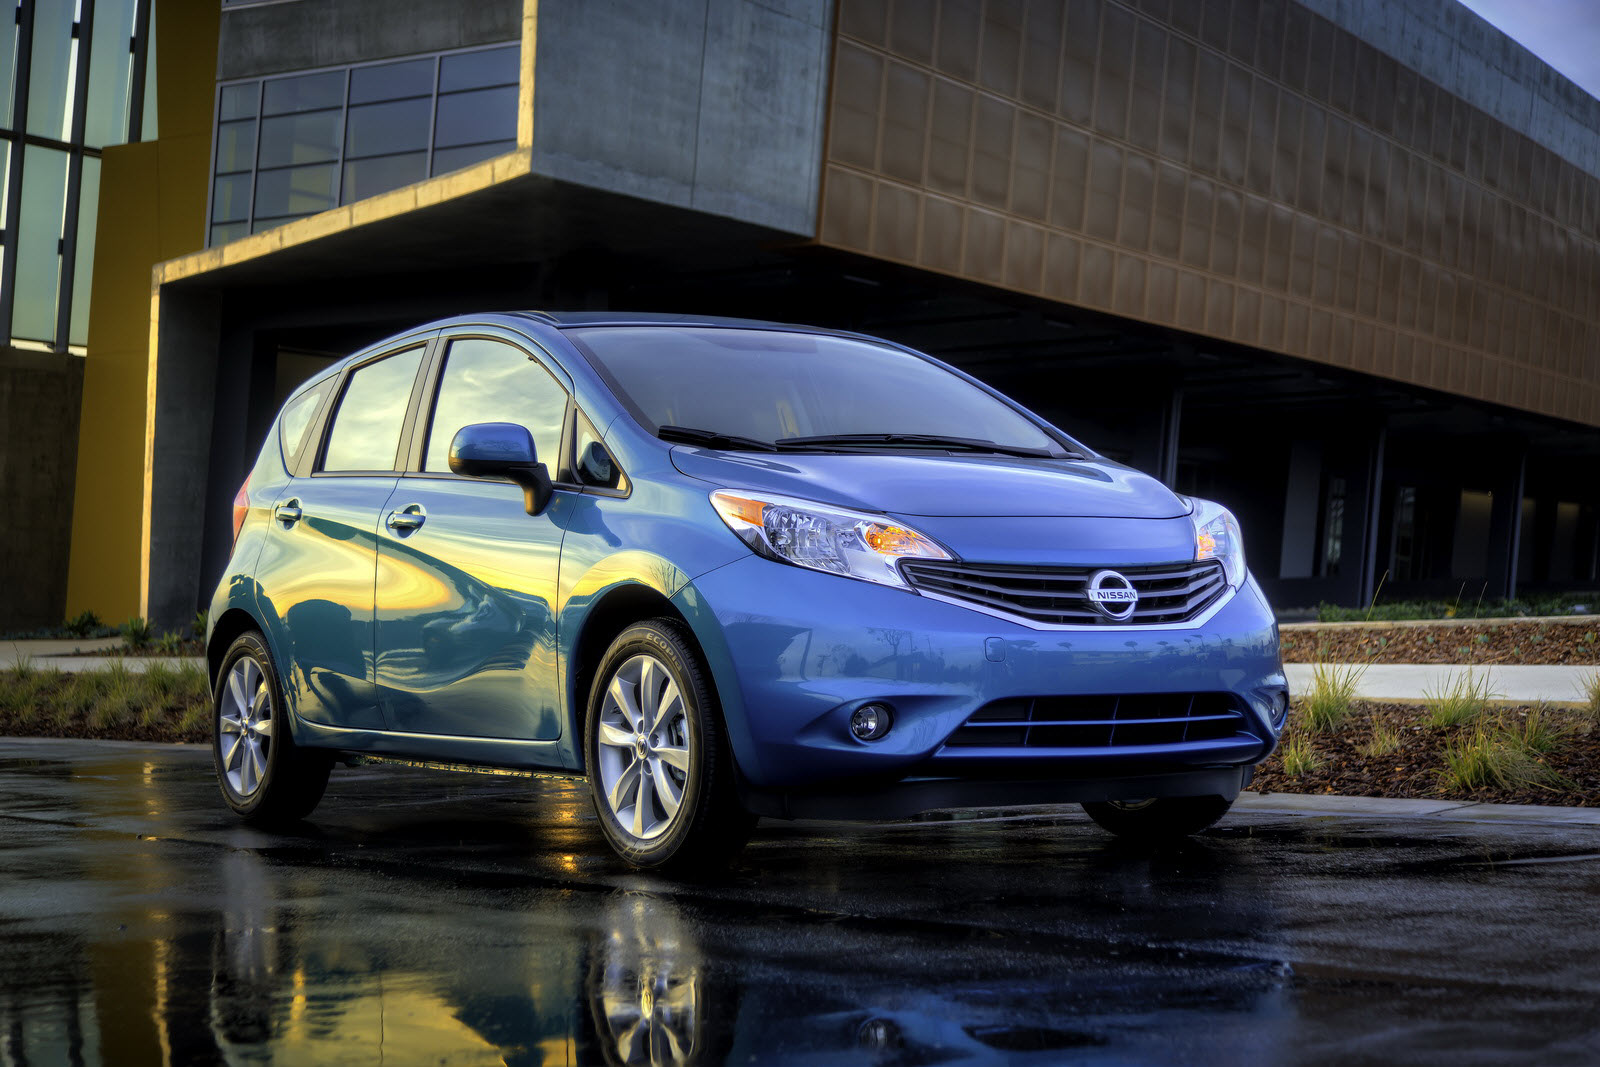 all-new 2014 nissan versa note offers energetic styling, best-level